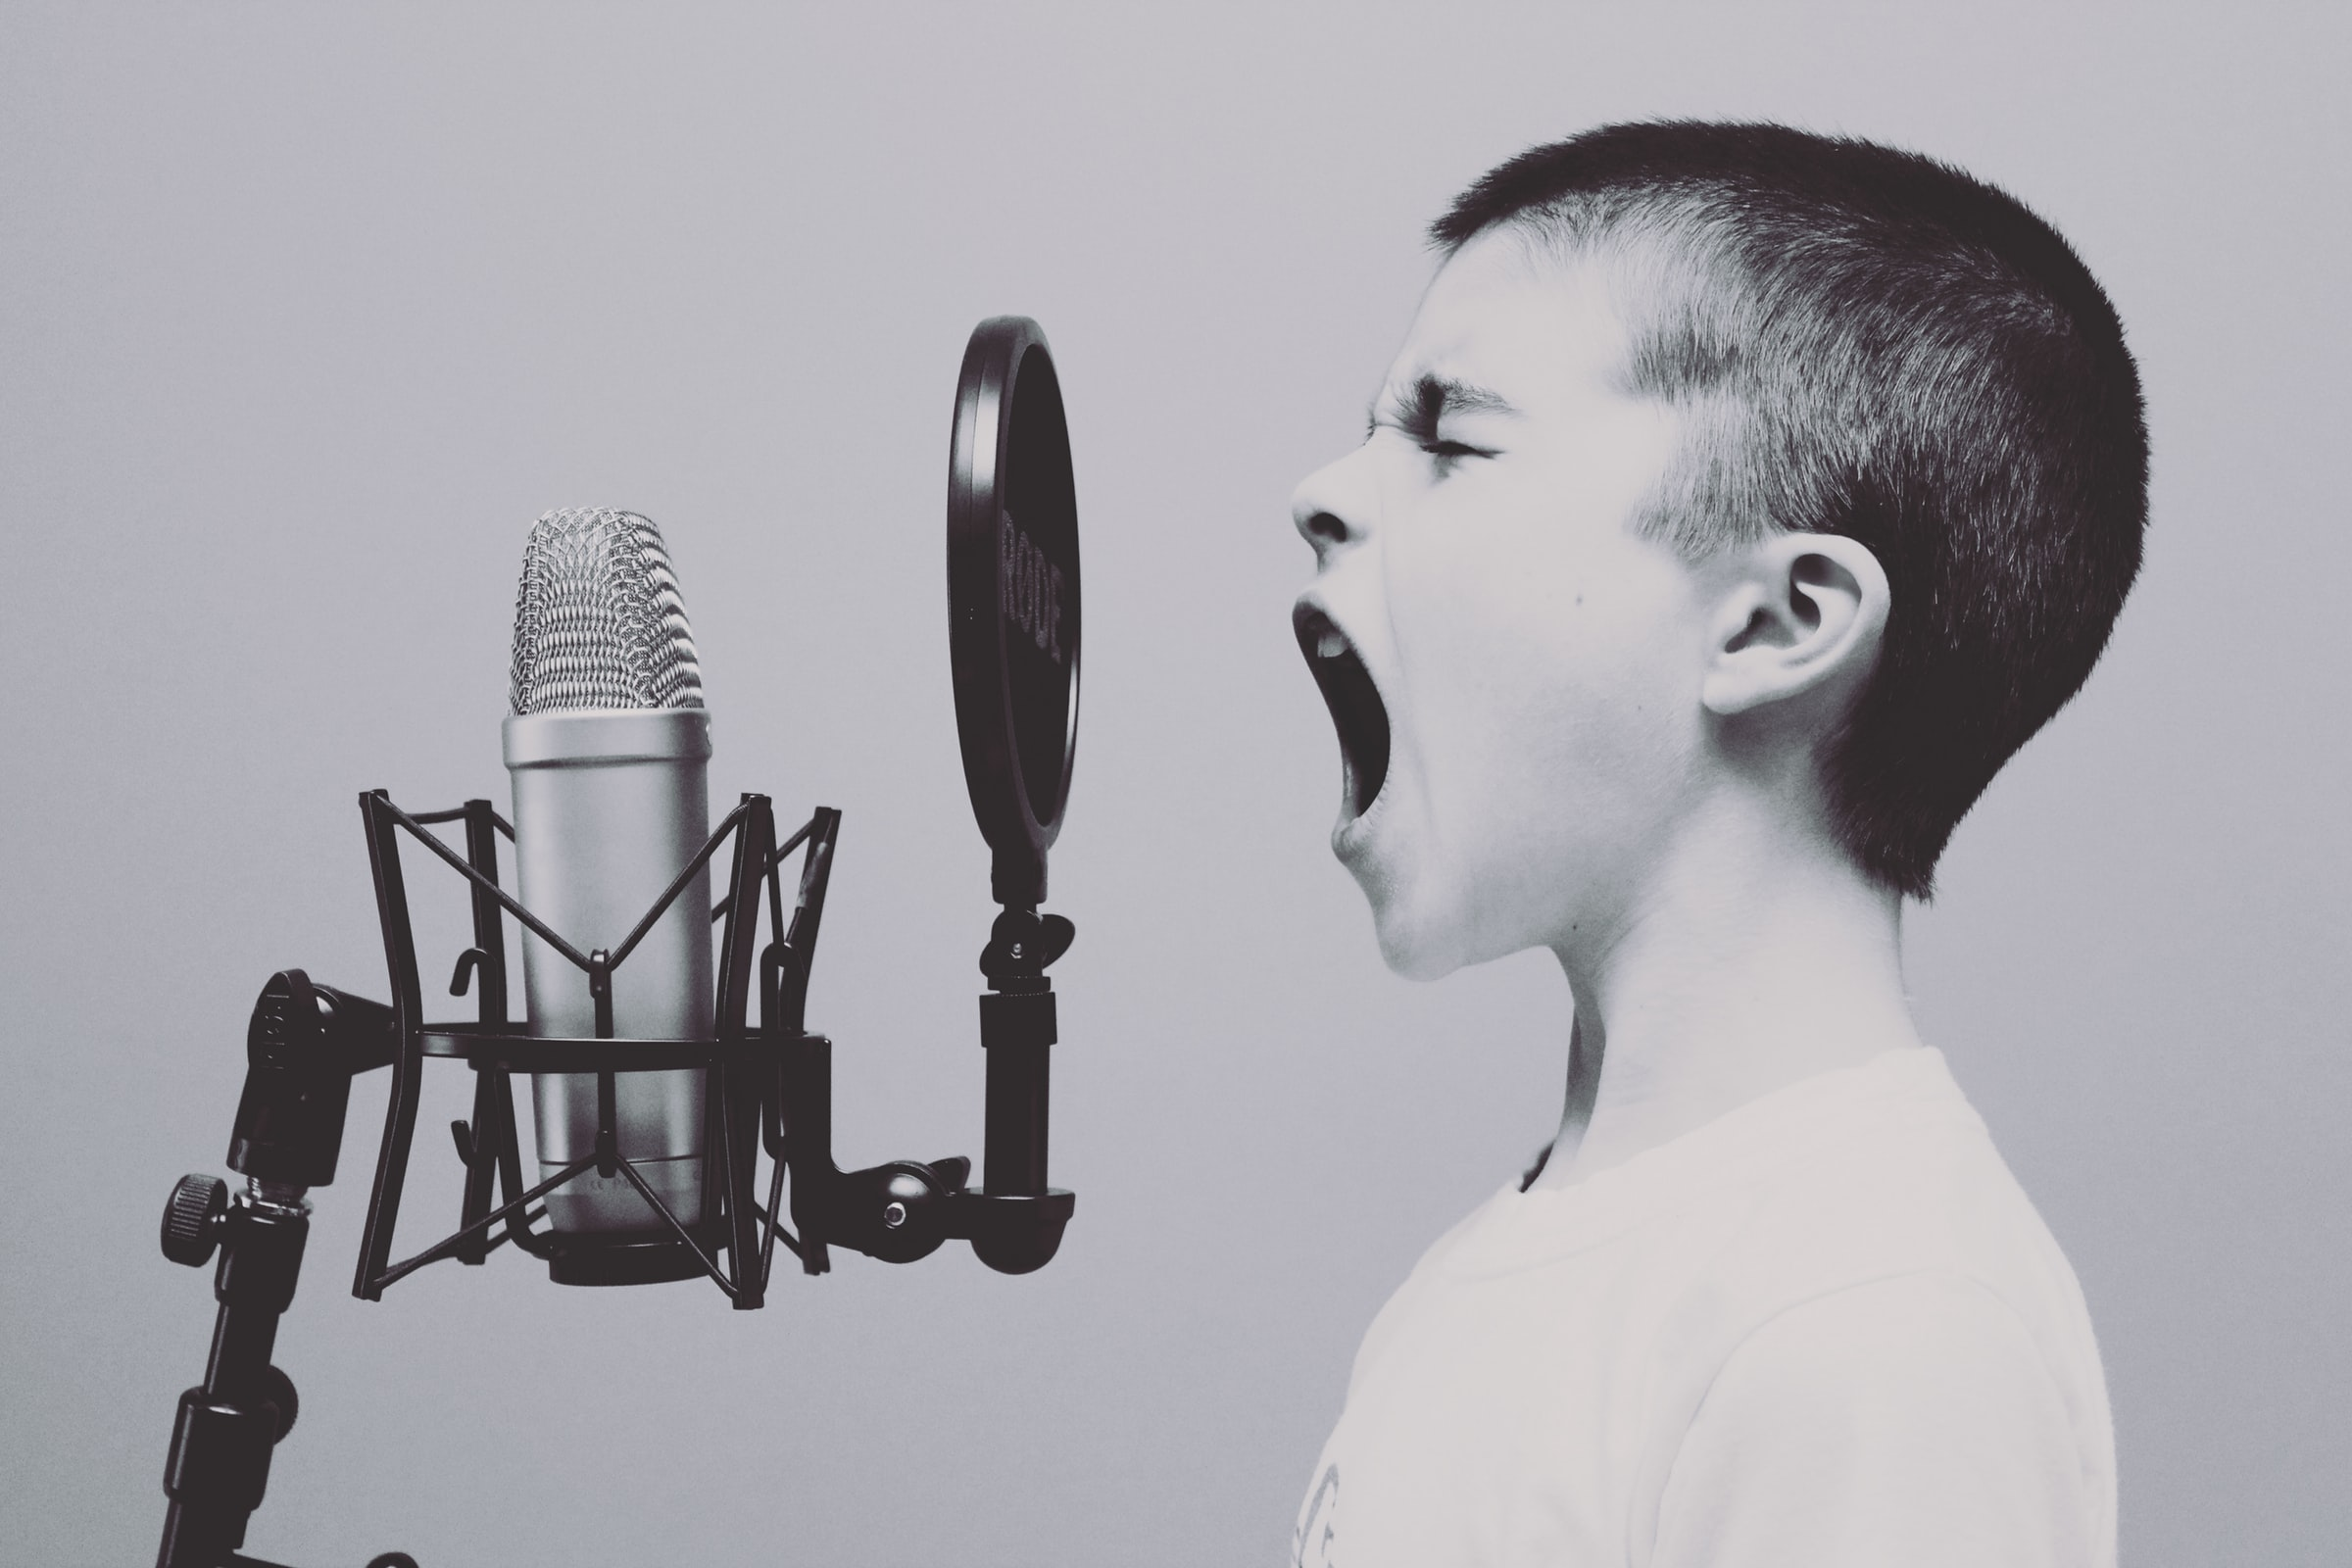 A boy yells into a pop filter and microphone